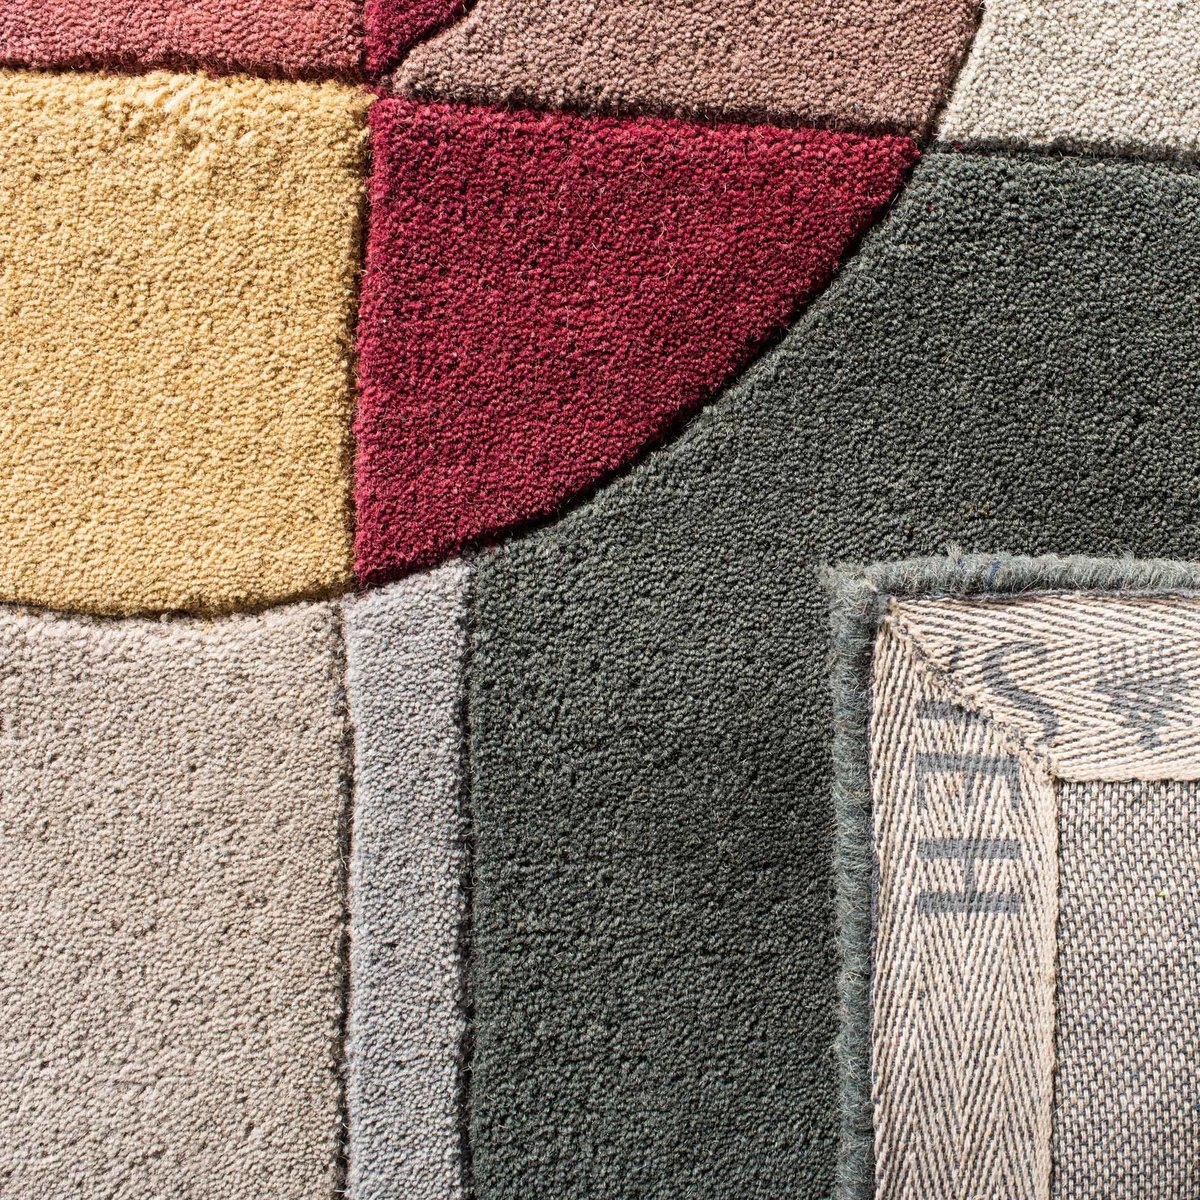 Rug Rd845b Rodeo Drive Area Rugs By Safavieh